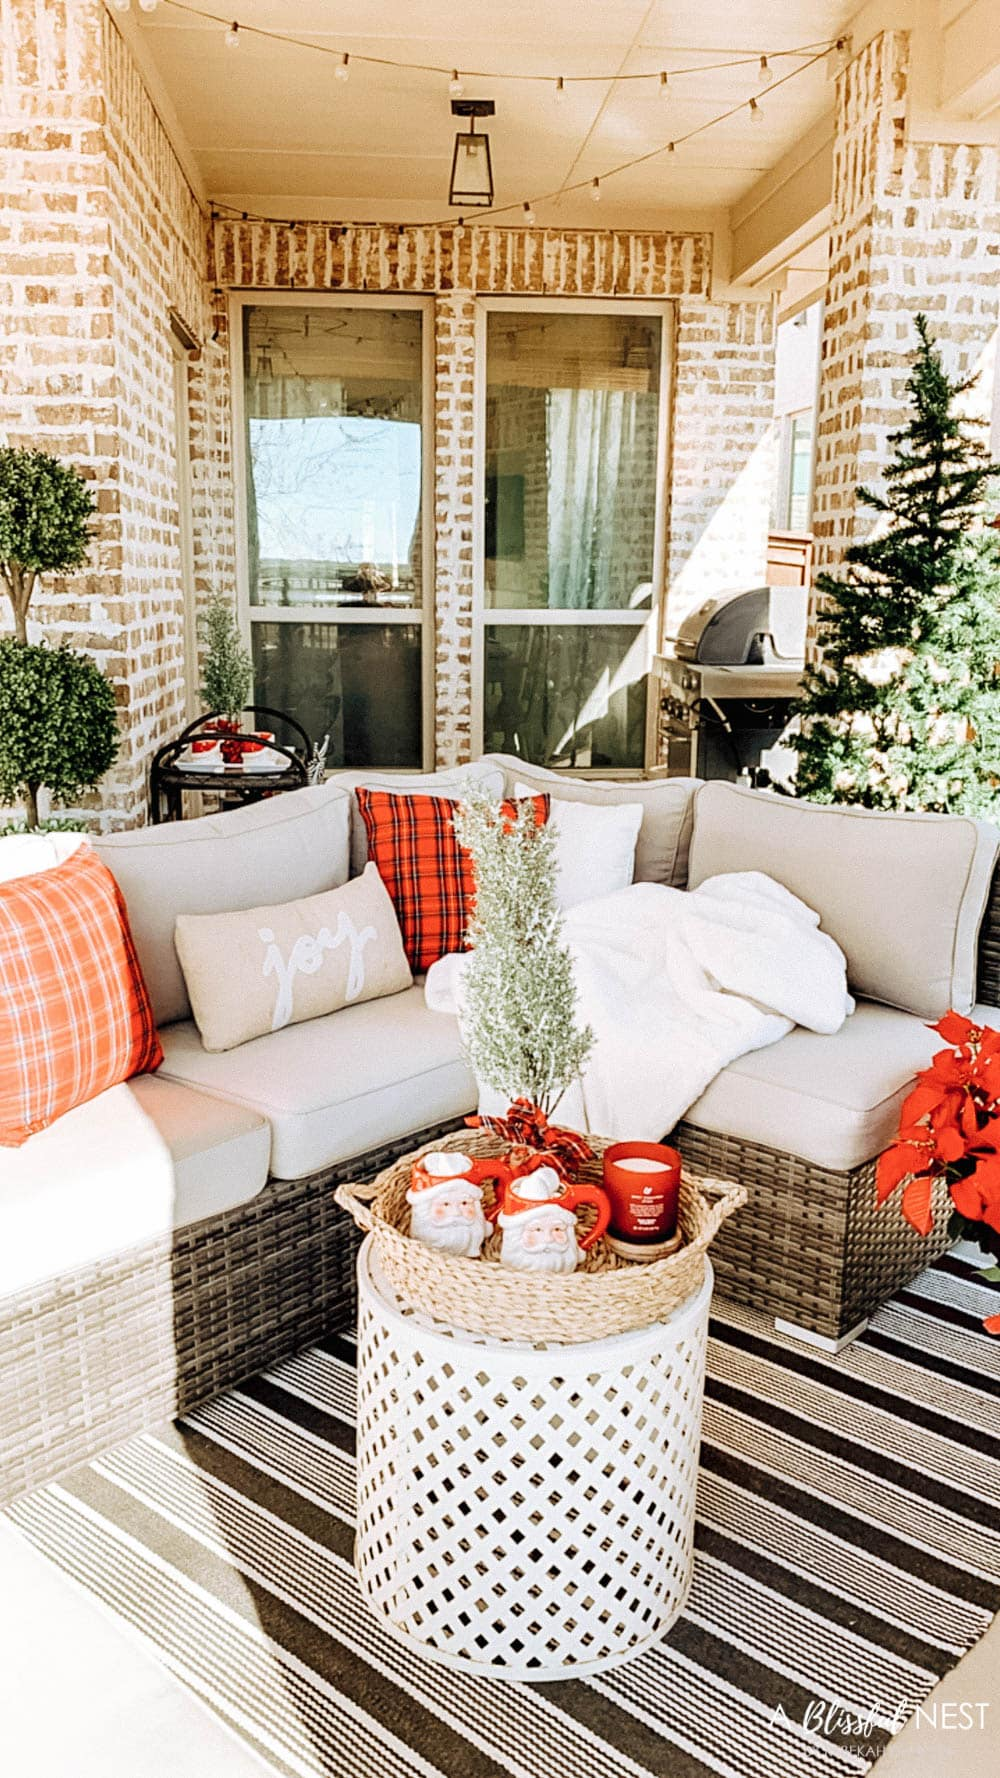 Creating A Cozy Outdoor Space for The Holidays